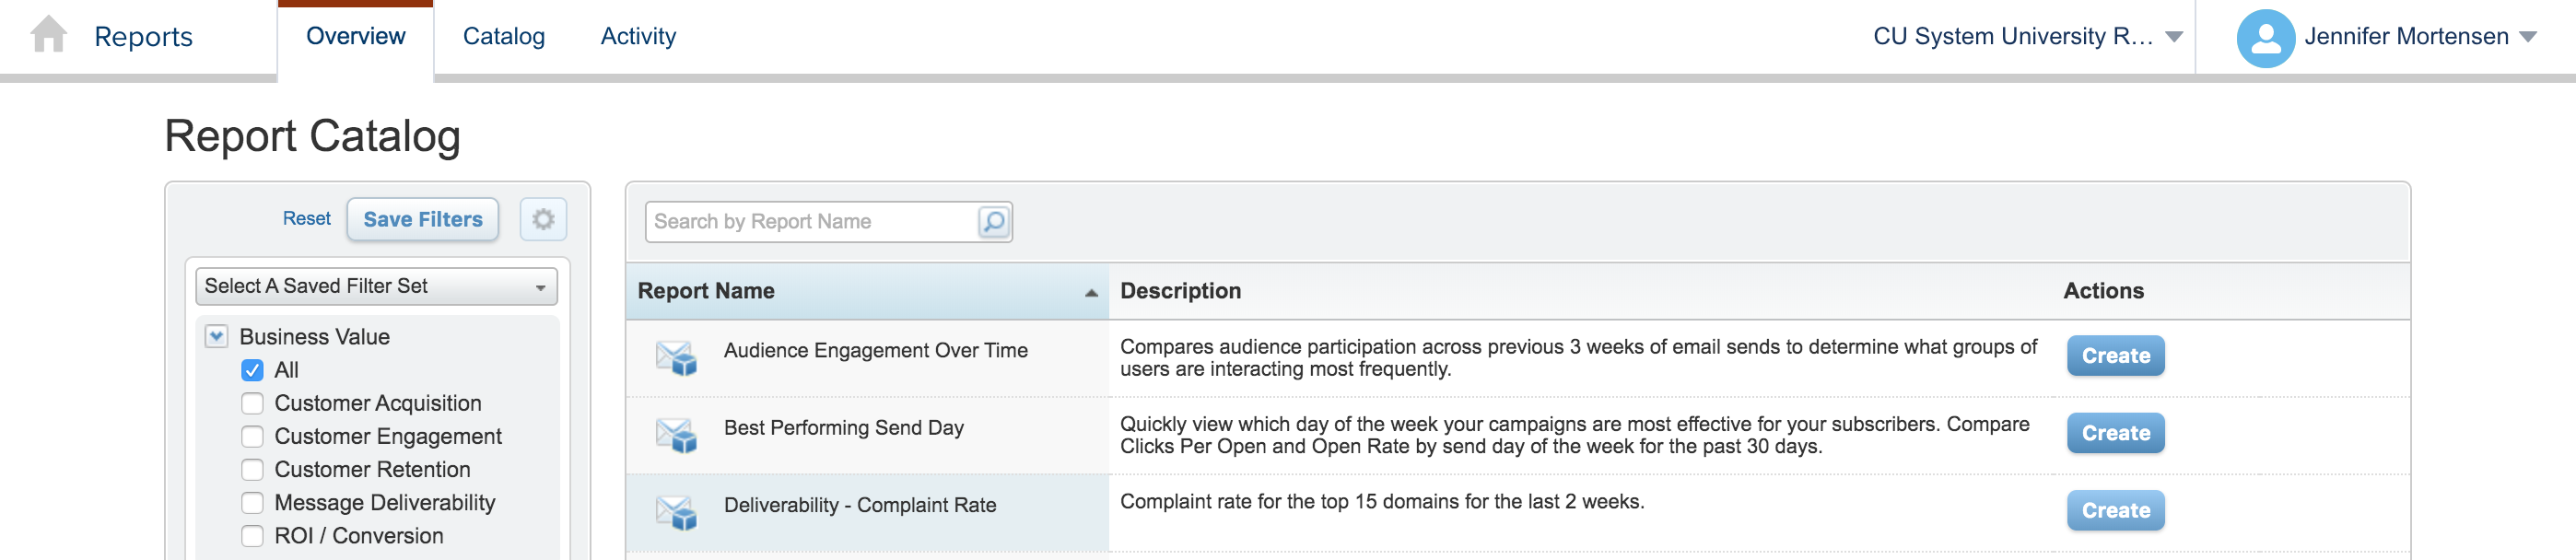 Deliverability - Complaint Rate Report